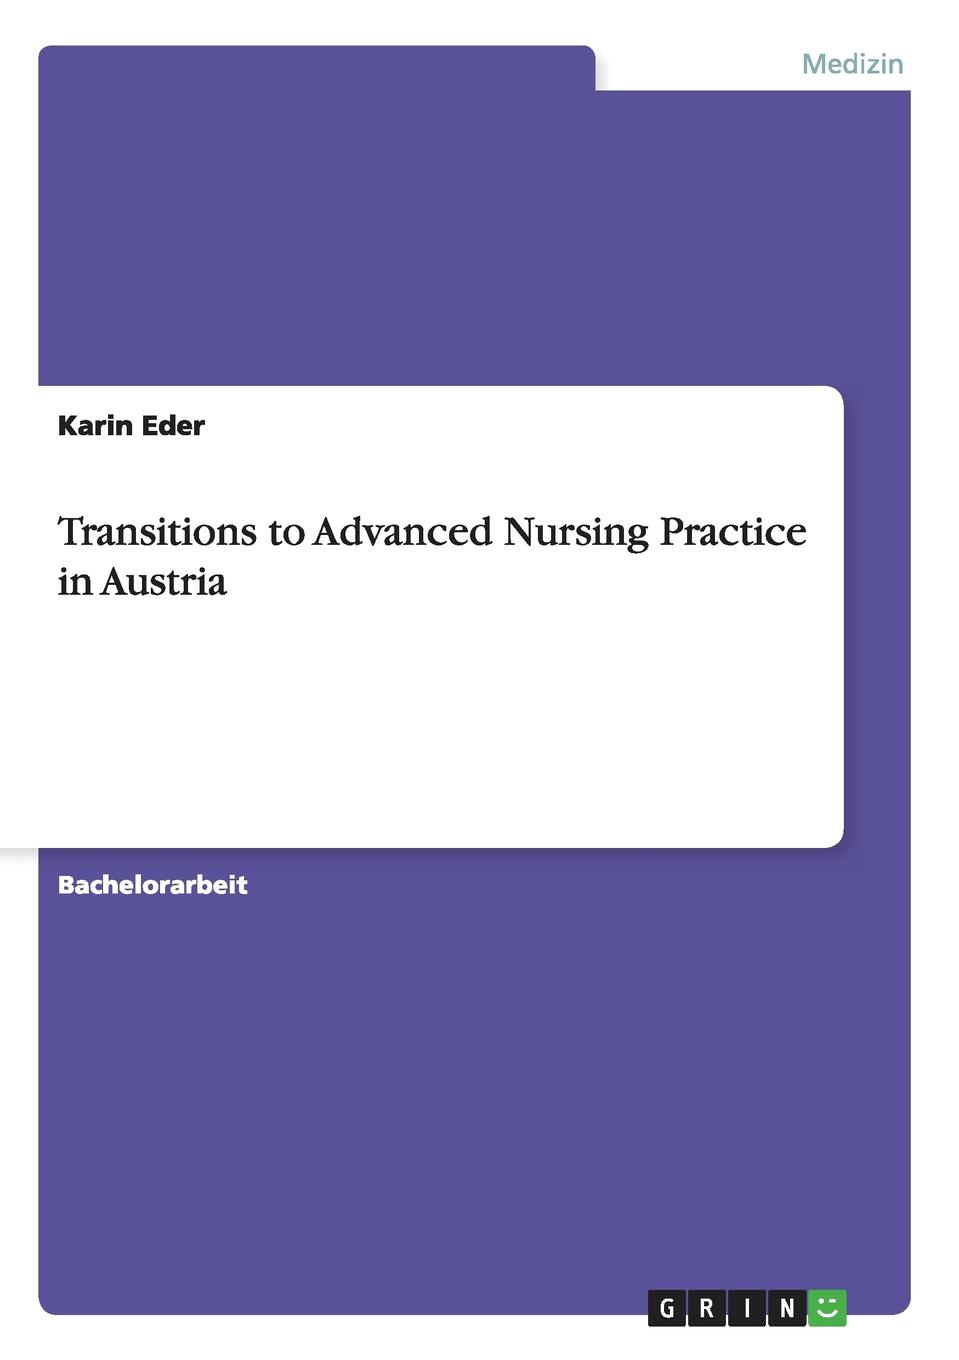 Karin Eder Transitions to Advanced Nursing Practice in Austria brown marie annette the advanced practice registered nurse as a prescriber